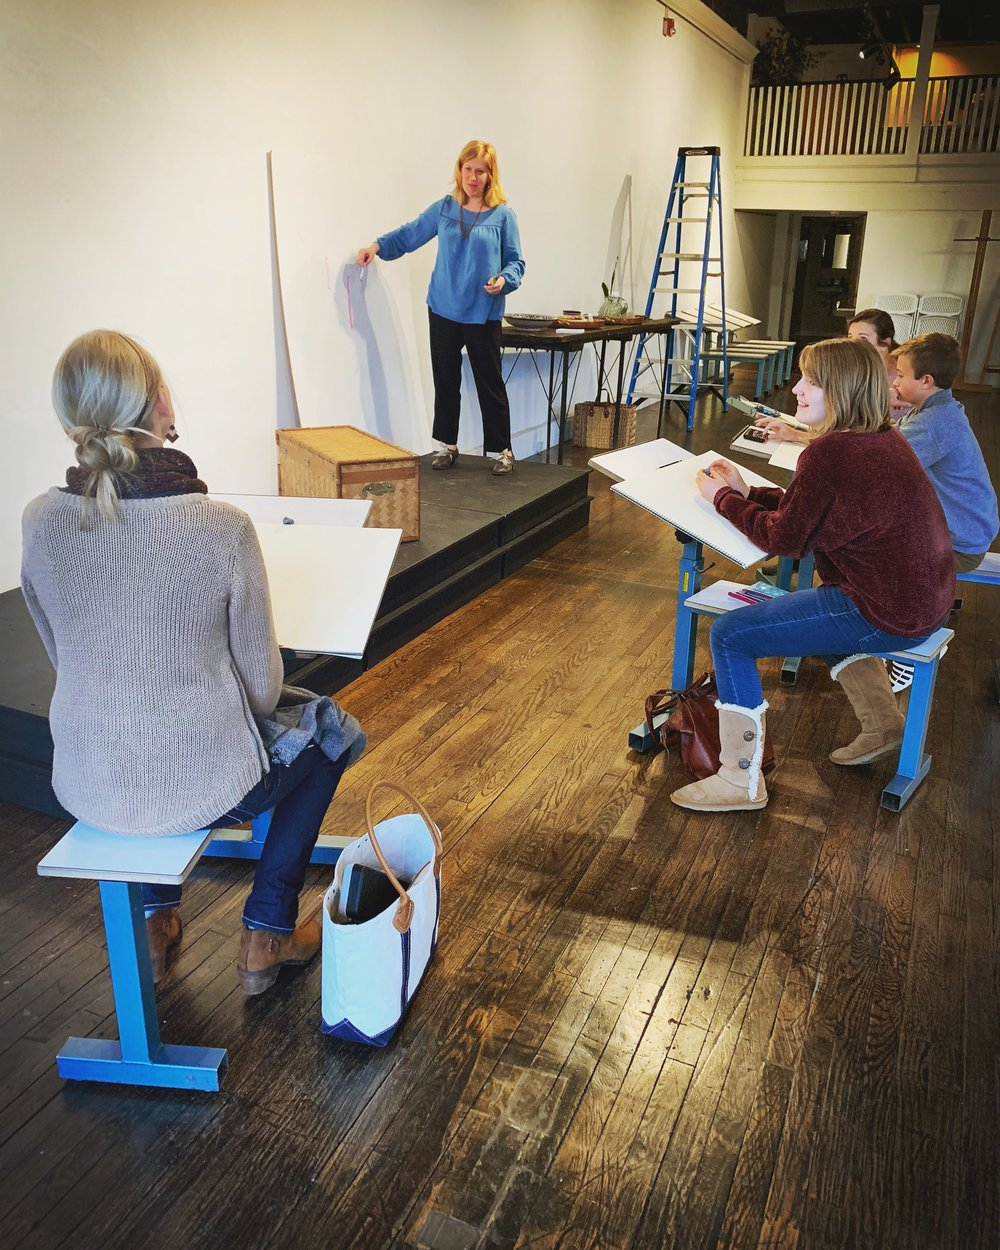 Pictured: Our co-founder, Michelle Radford, teaches an evening Beginning Drawing class to a group of students.